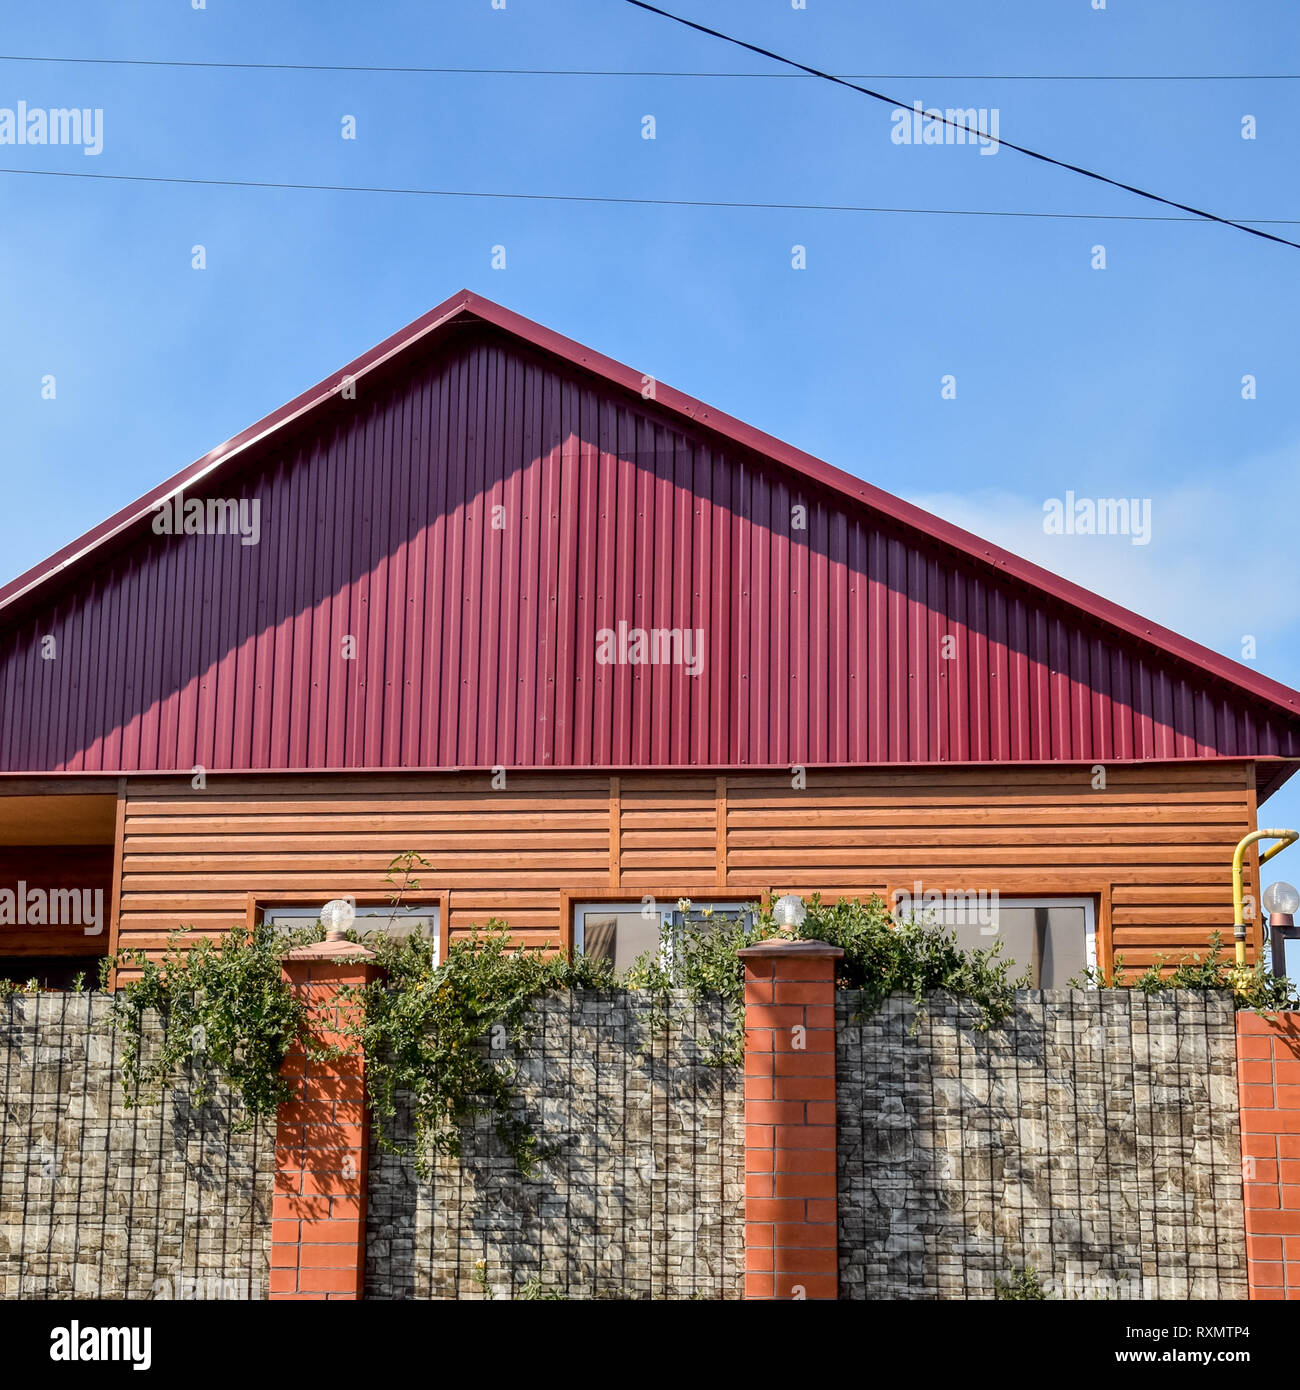 Detached House With A Roof Made Of Steel Sheets Roof Metal Sheets Modern Types Of Roofing Materials Stock Photo Alamy